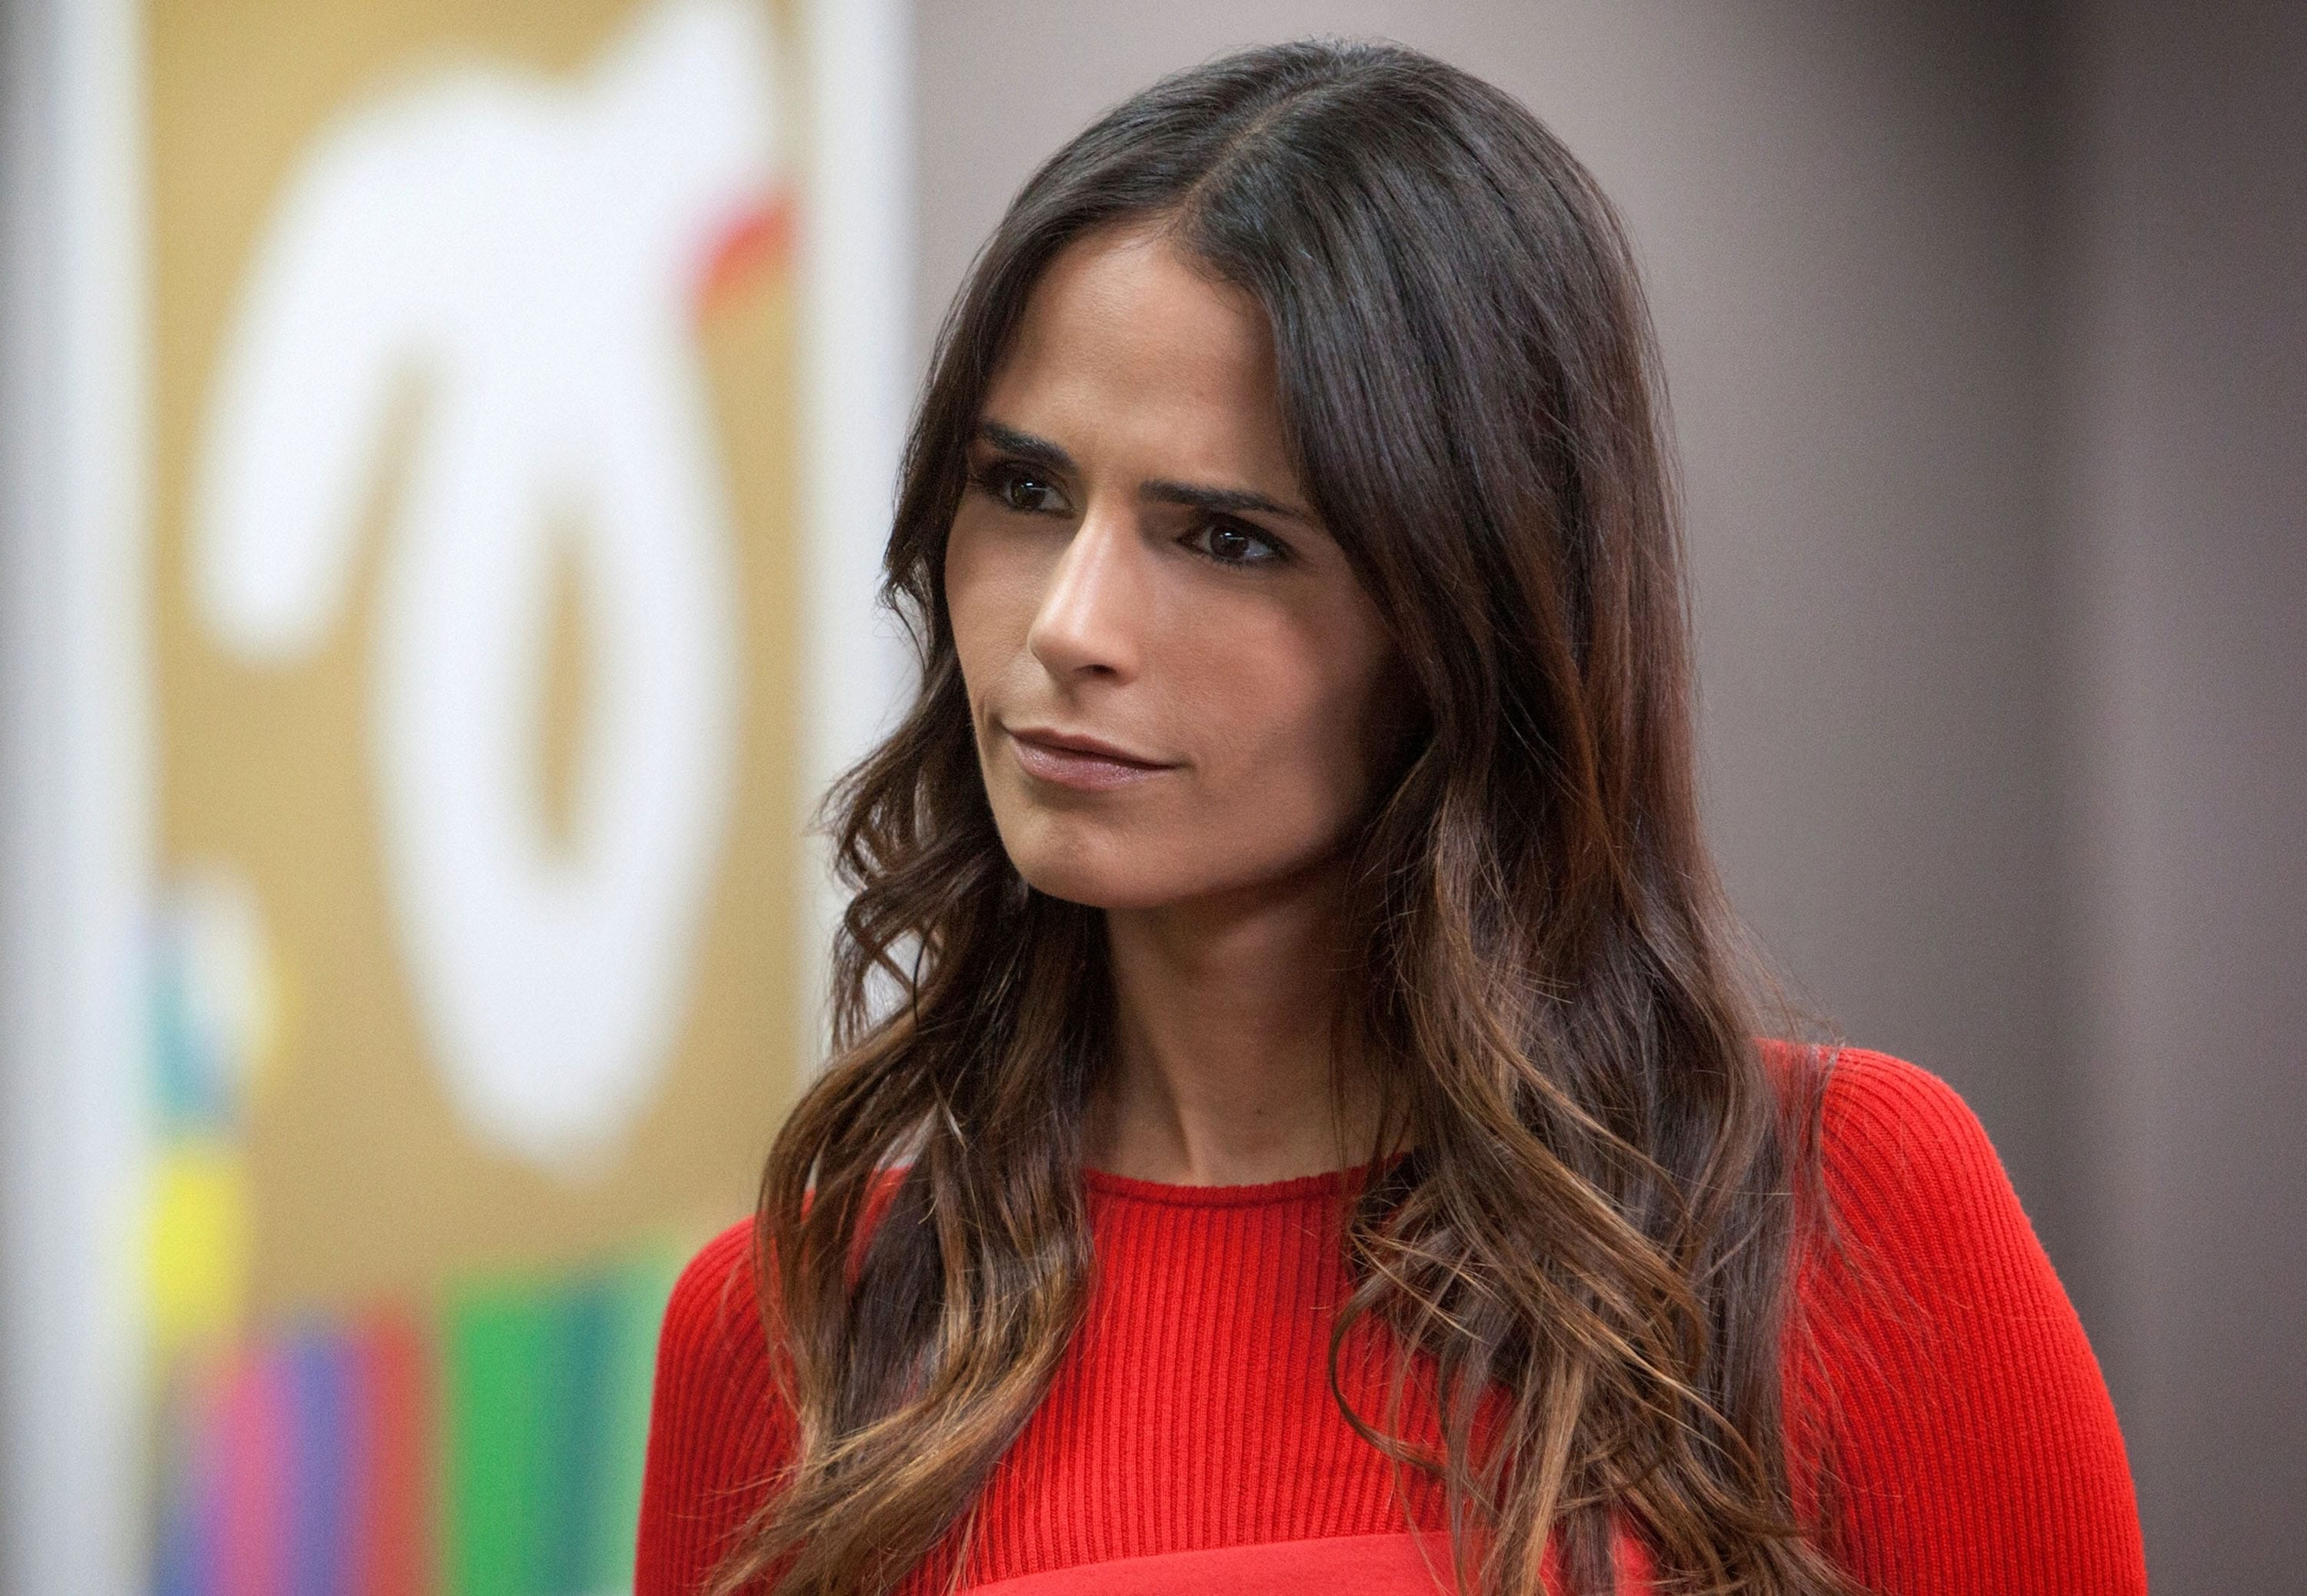 jordana brewster hd desktop wallpapers | 7wallpapers